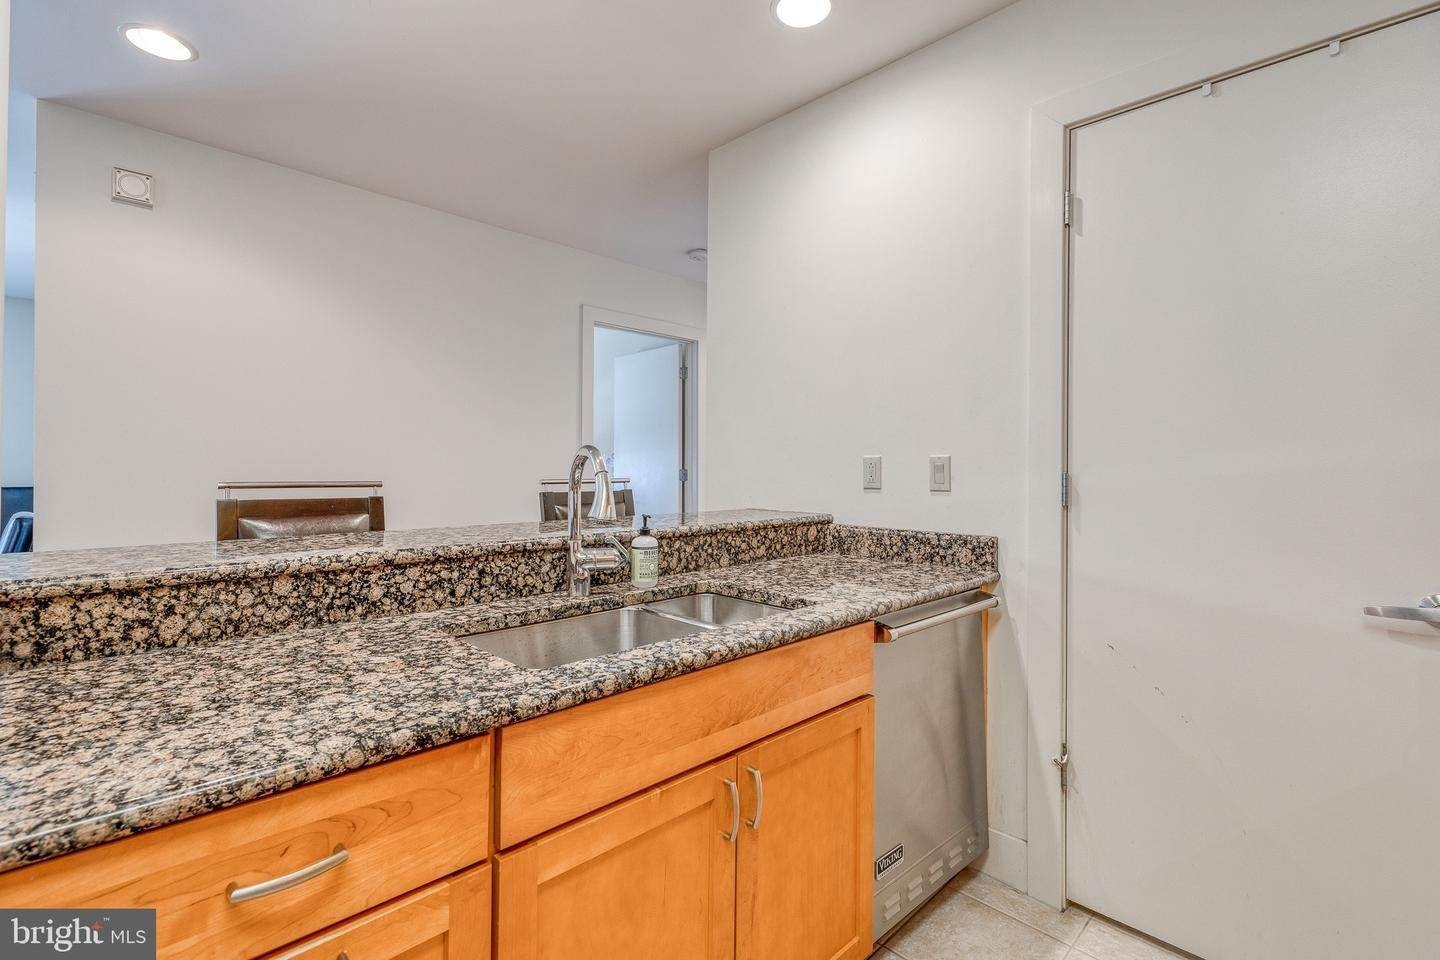 15. Apartments for Sale at 23 S 23RD ST #5B Philadelphia, Pennsylvania 19103 United States